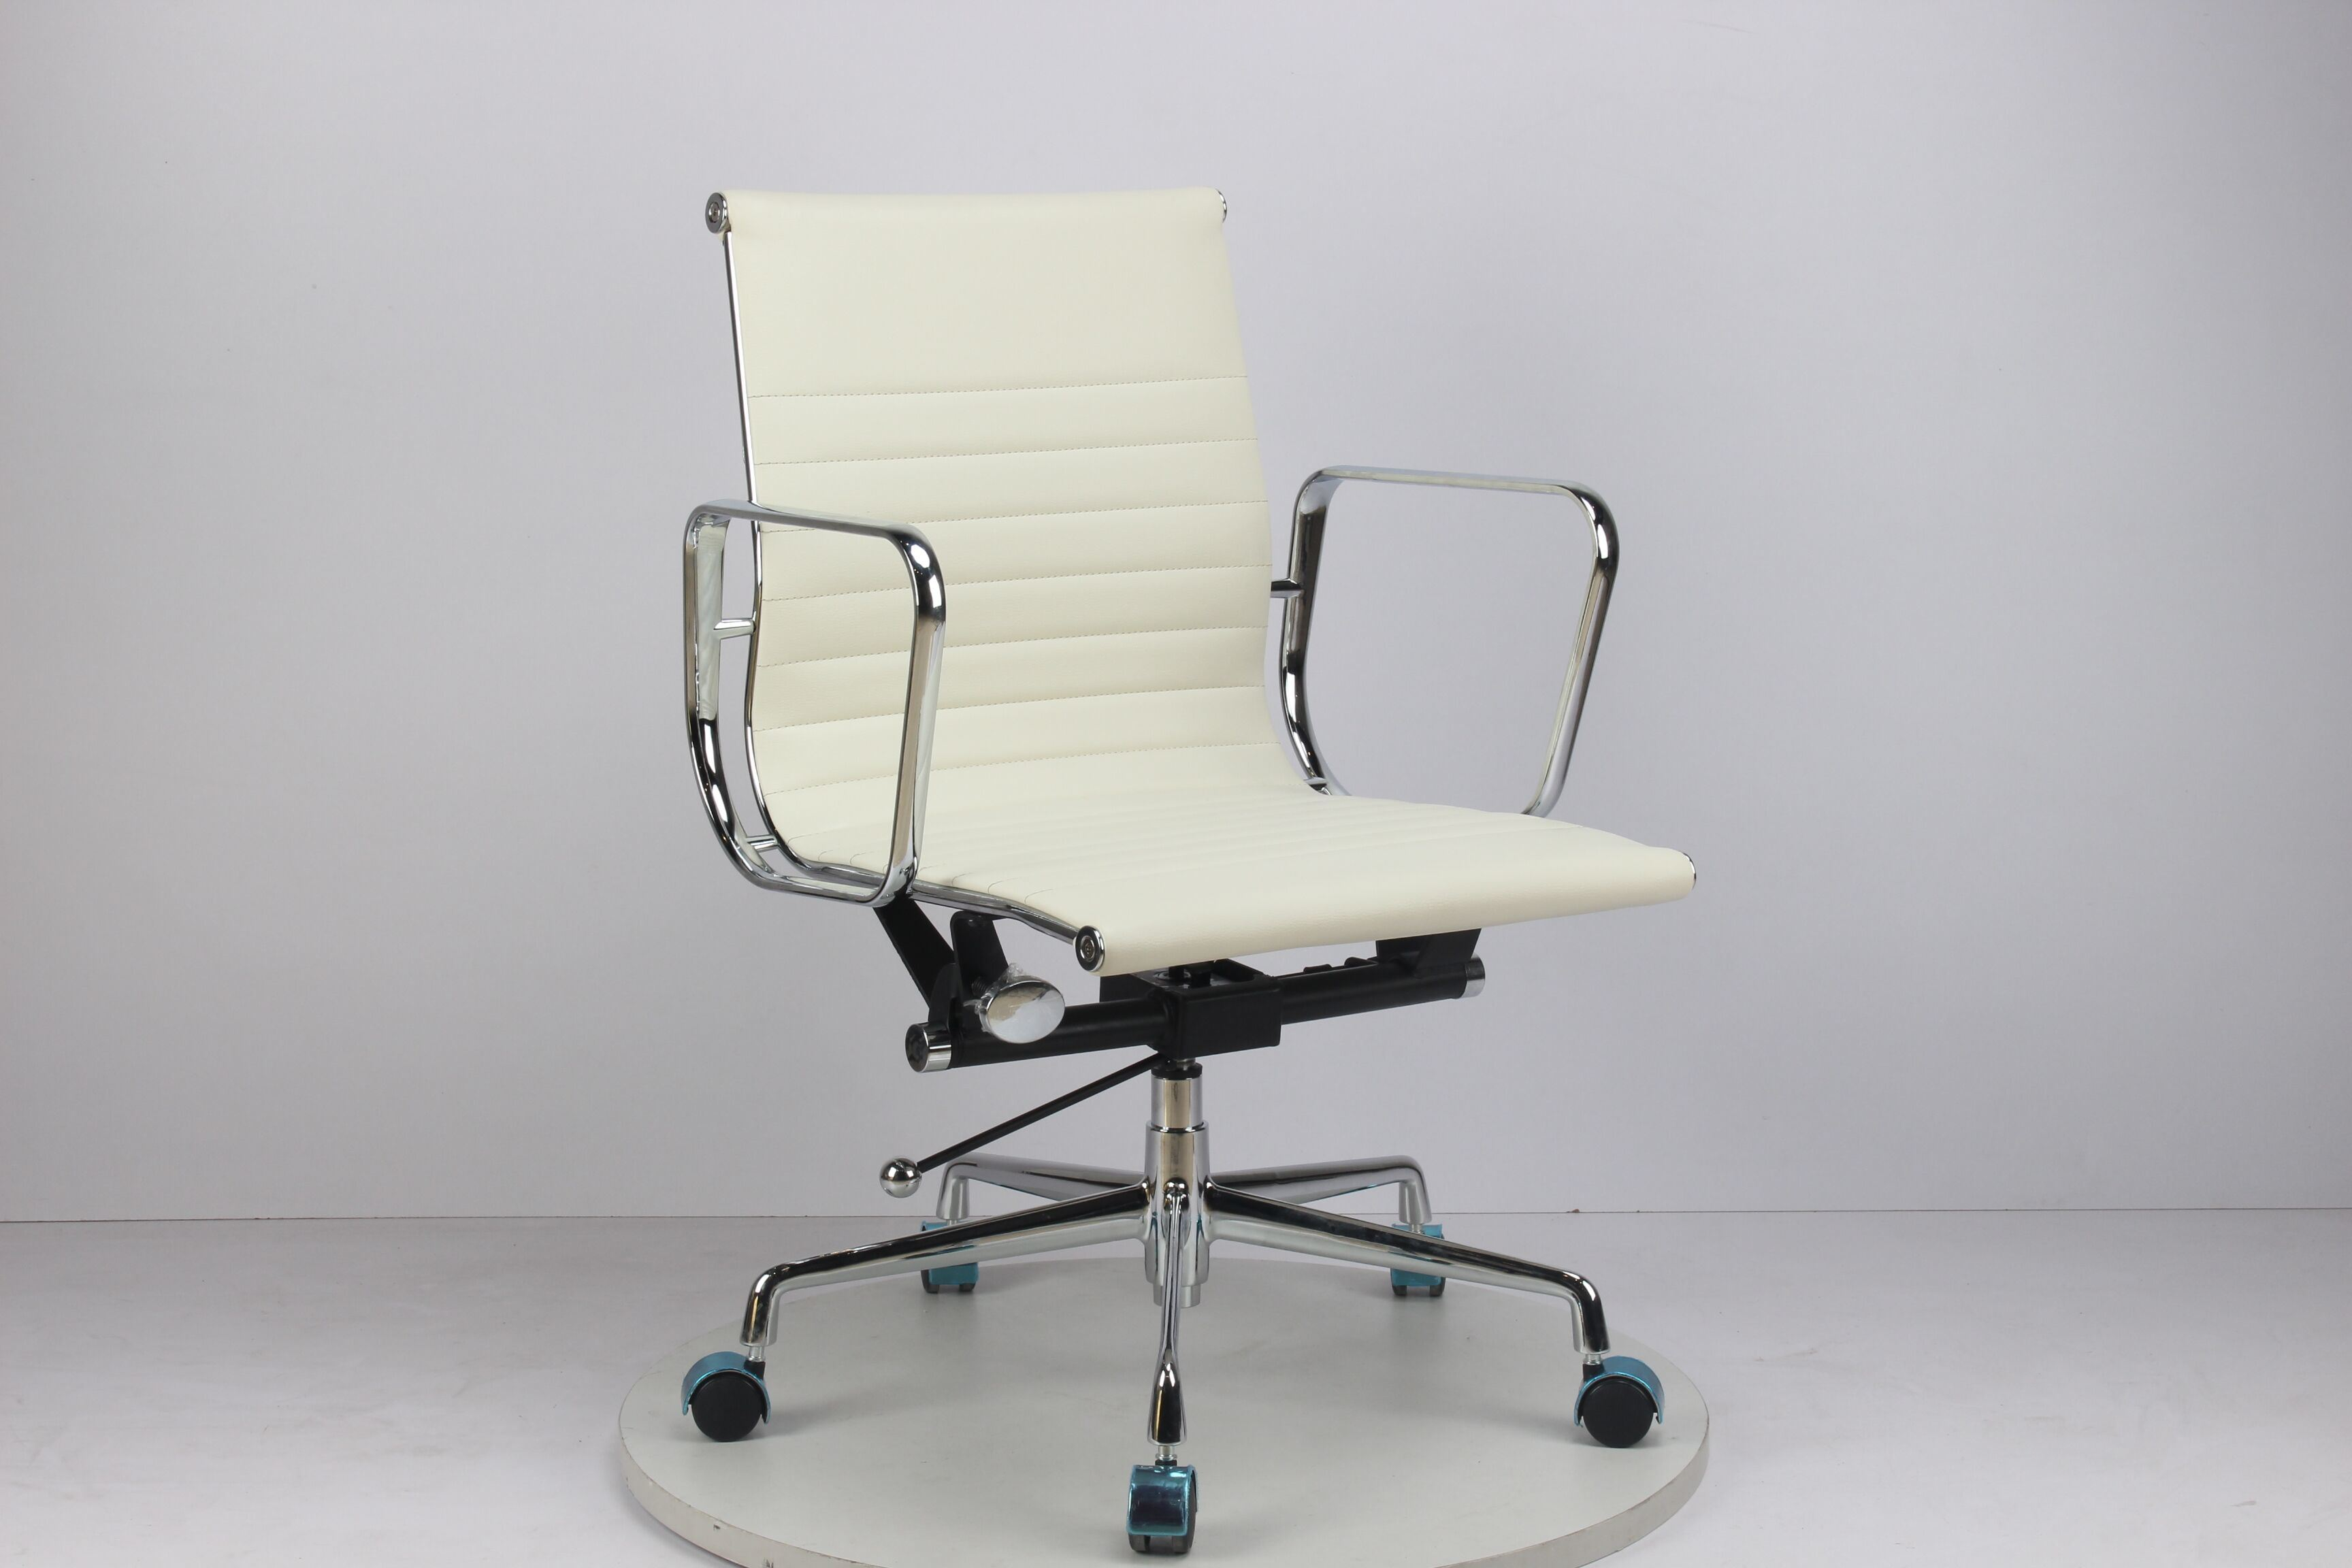 [Hot Item] Soho Ribbed Management Chair High End Designer Office Chair